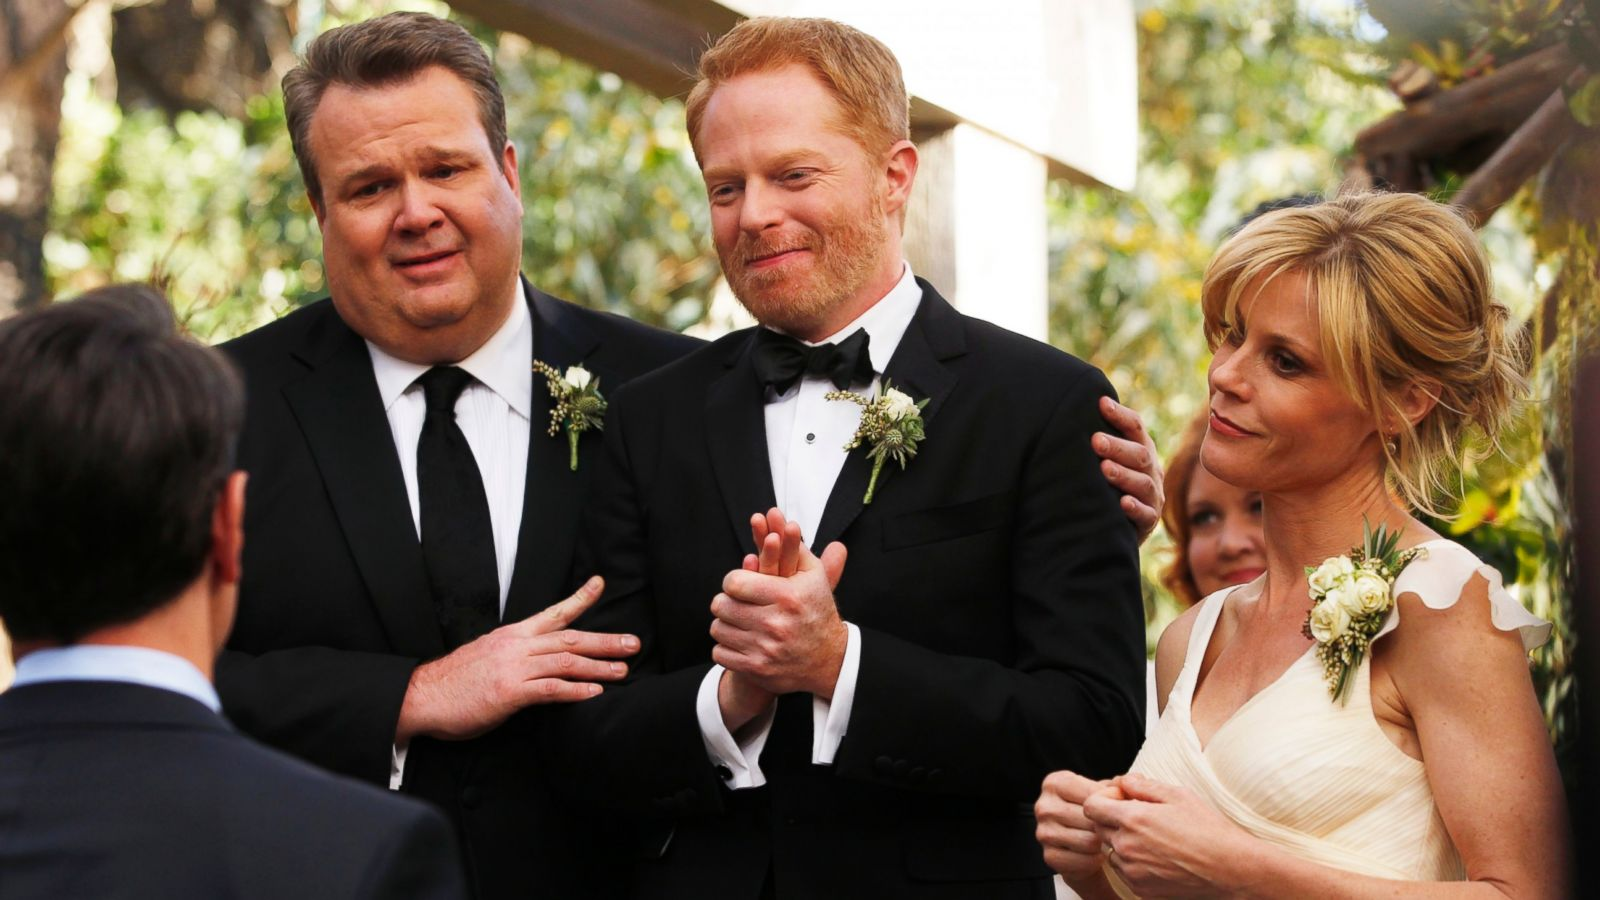 Cam Gay eric stonestreet on 'modern family,' gay marriage and his love of vines